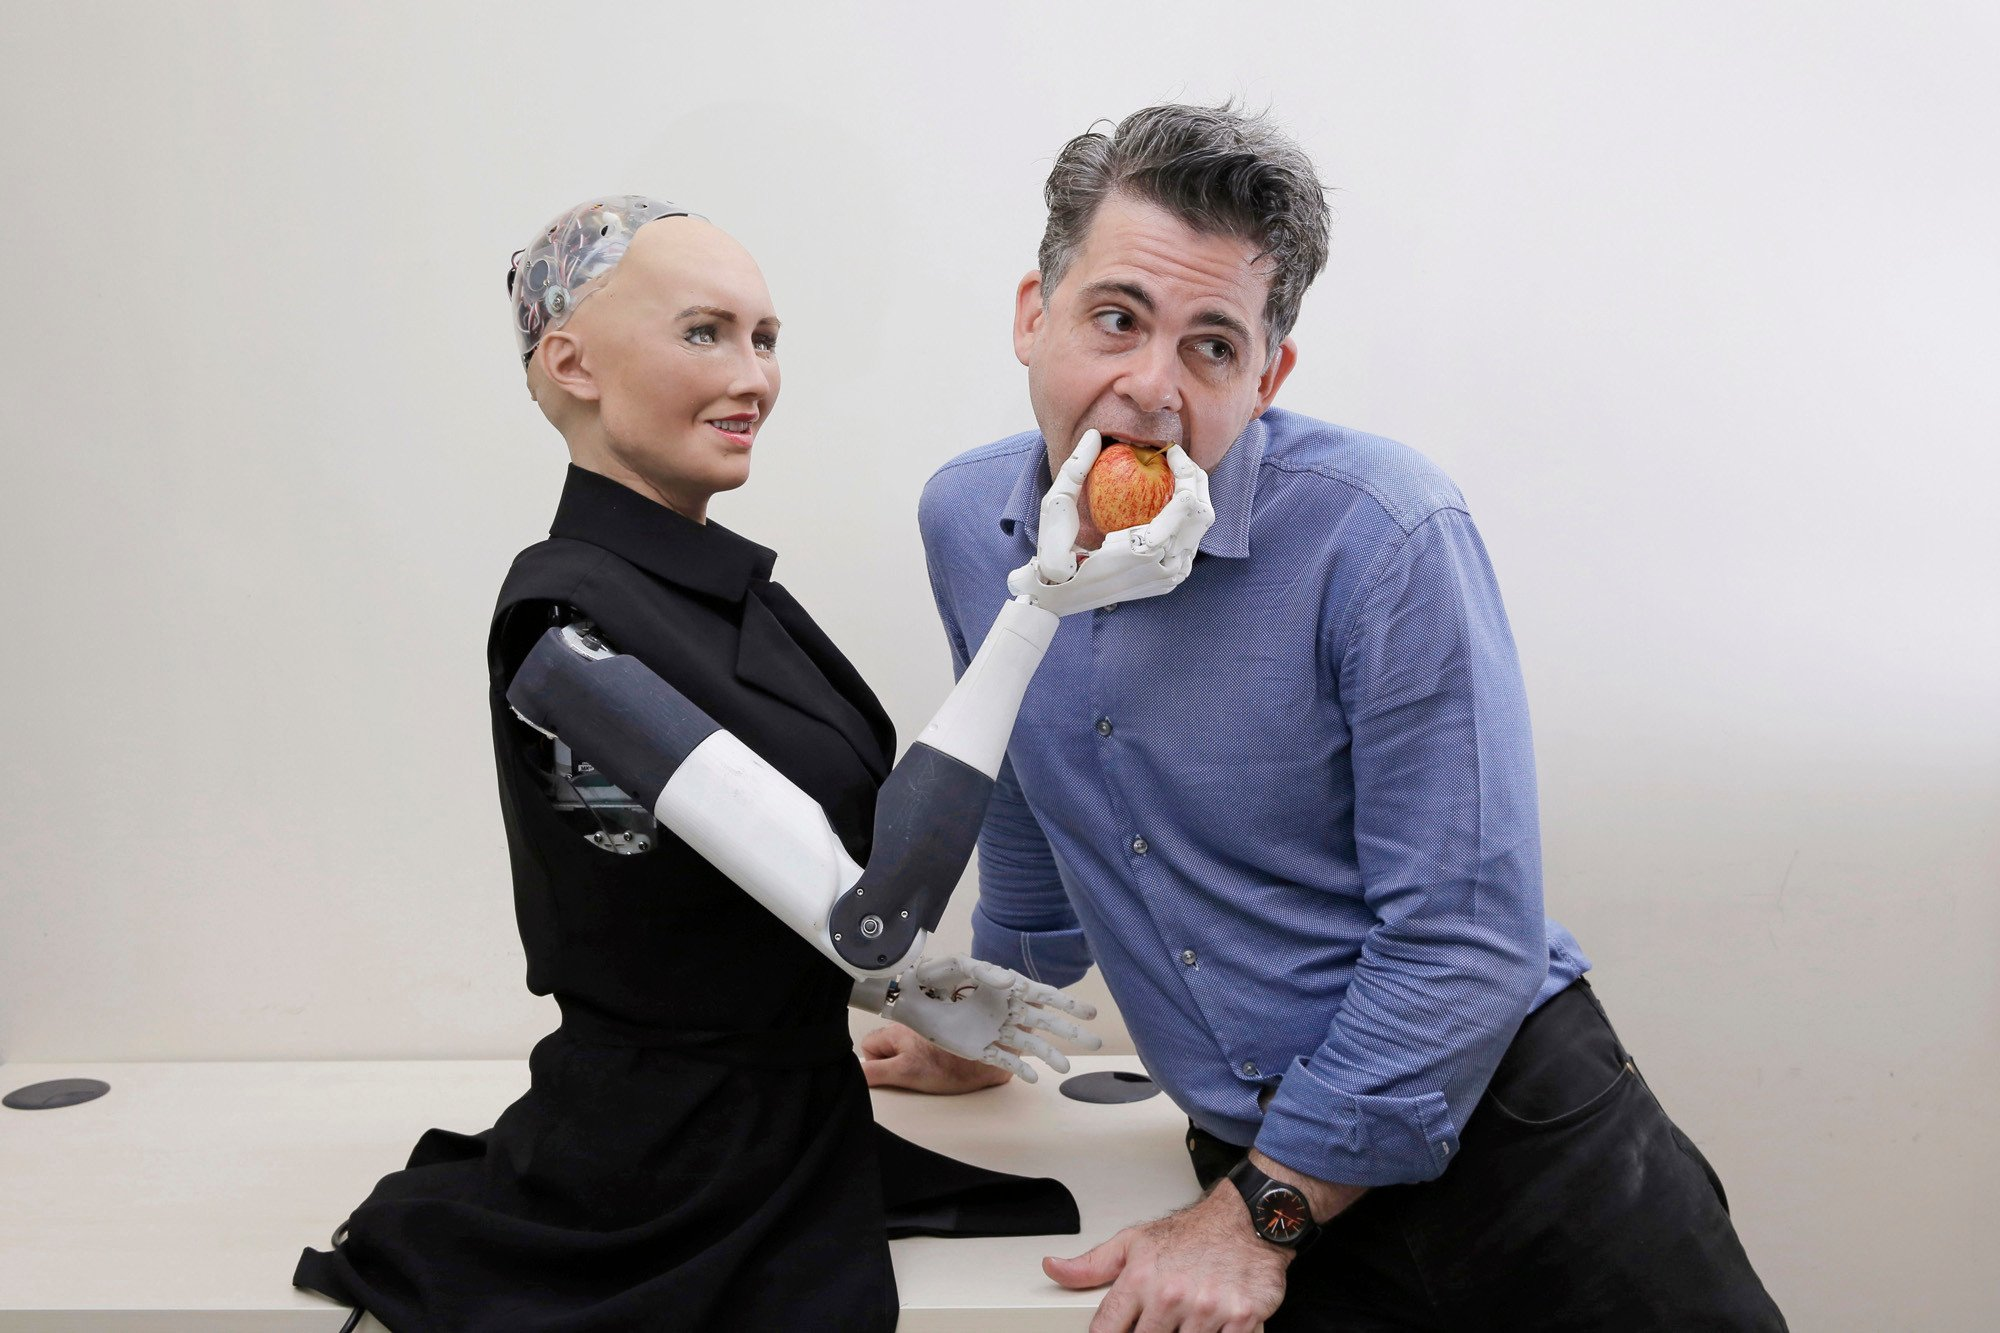 Lifelike robots are being designed to win human trust